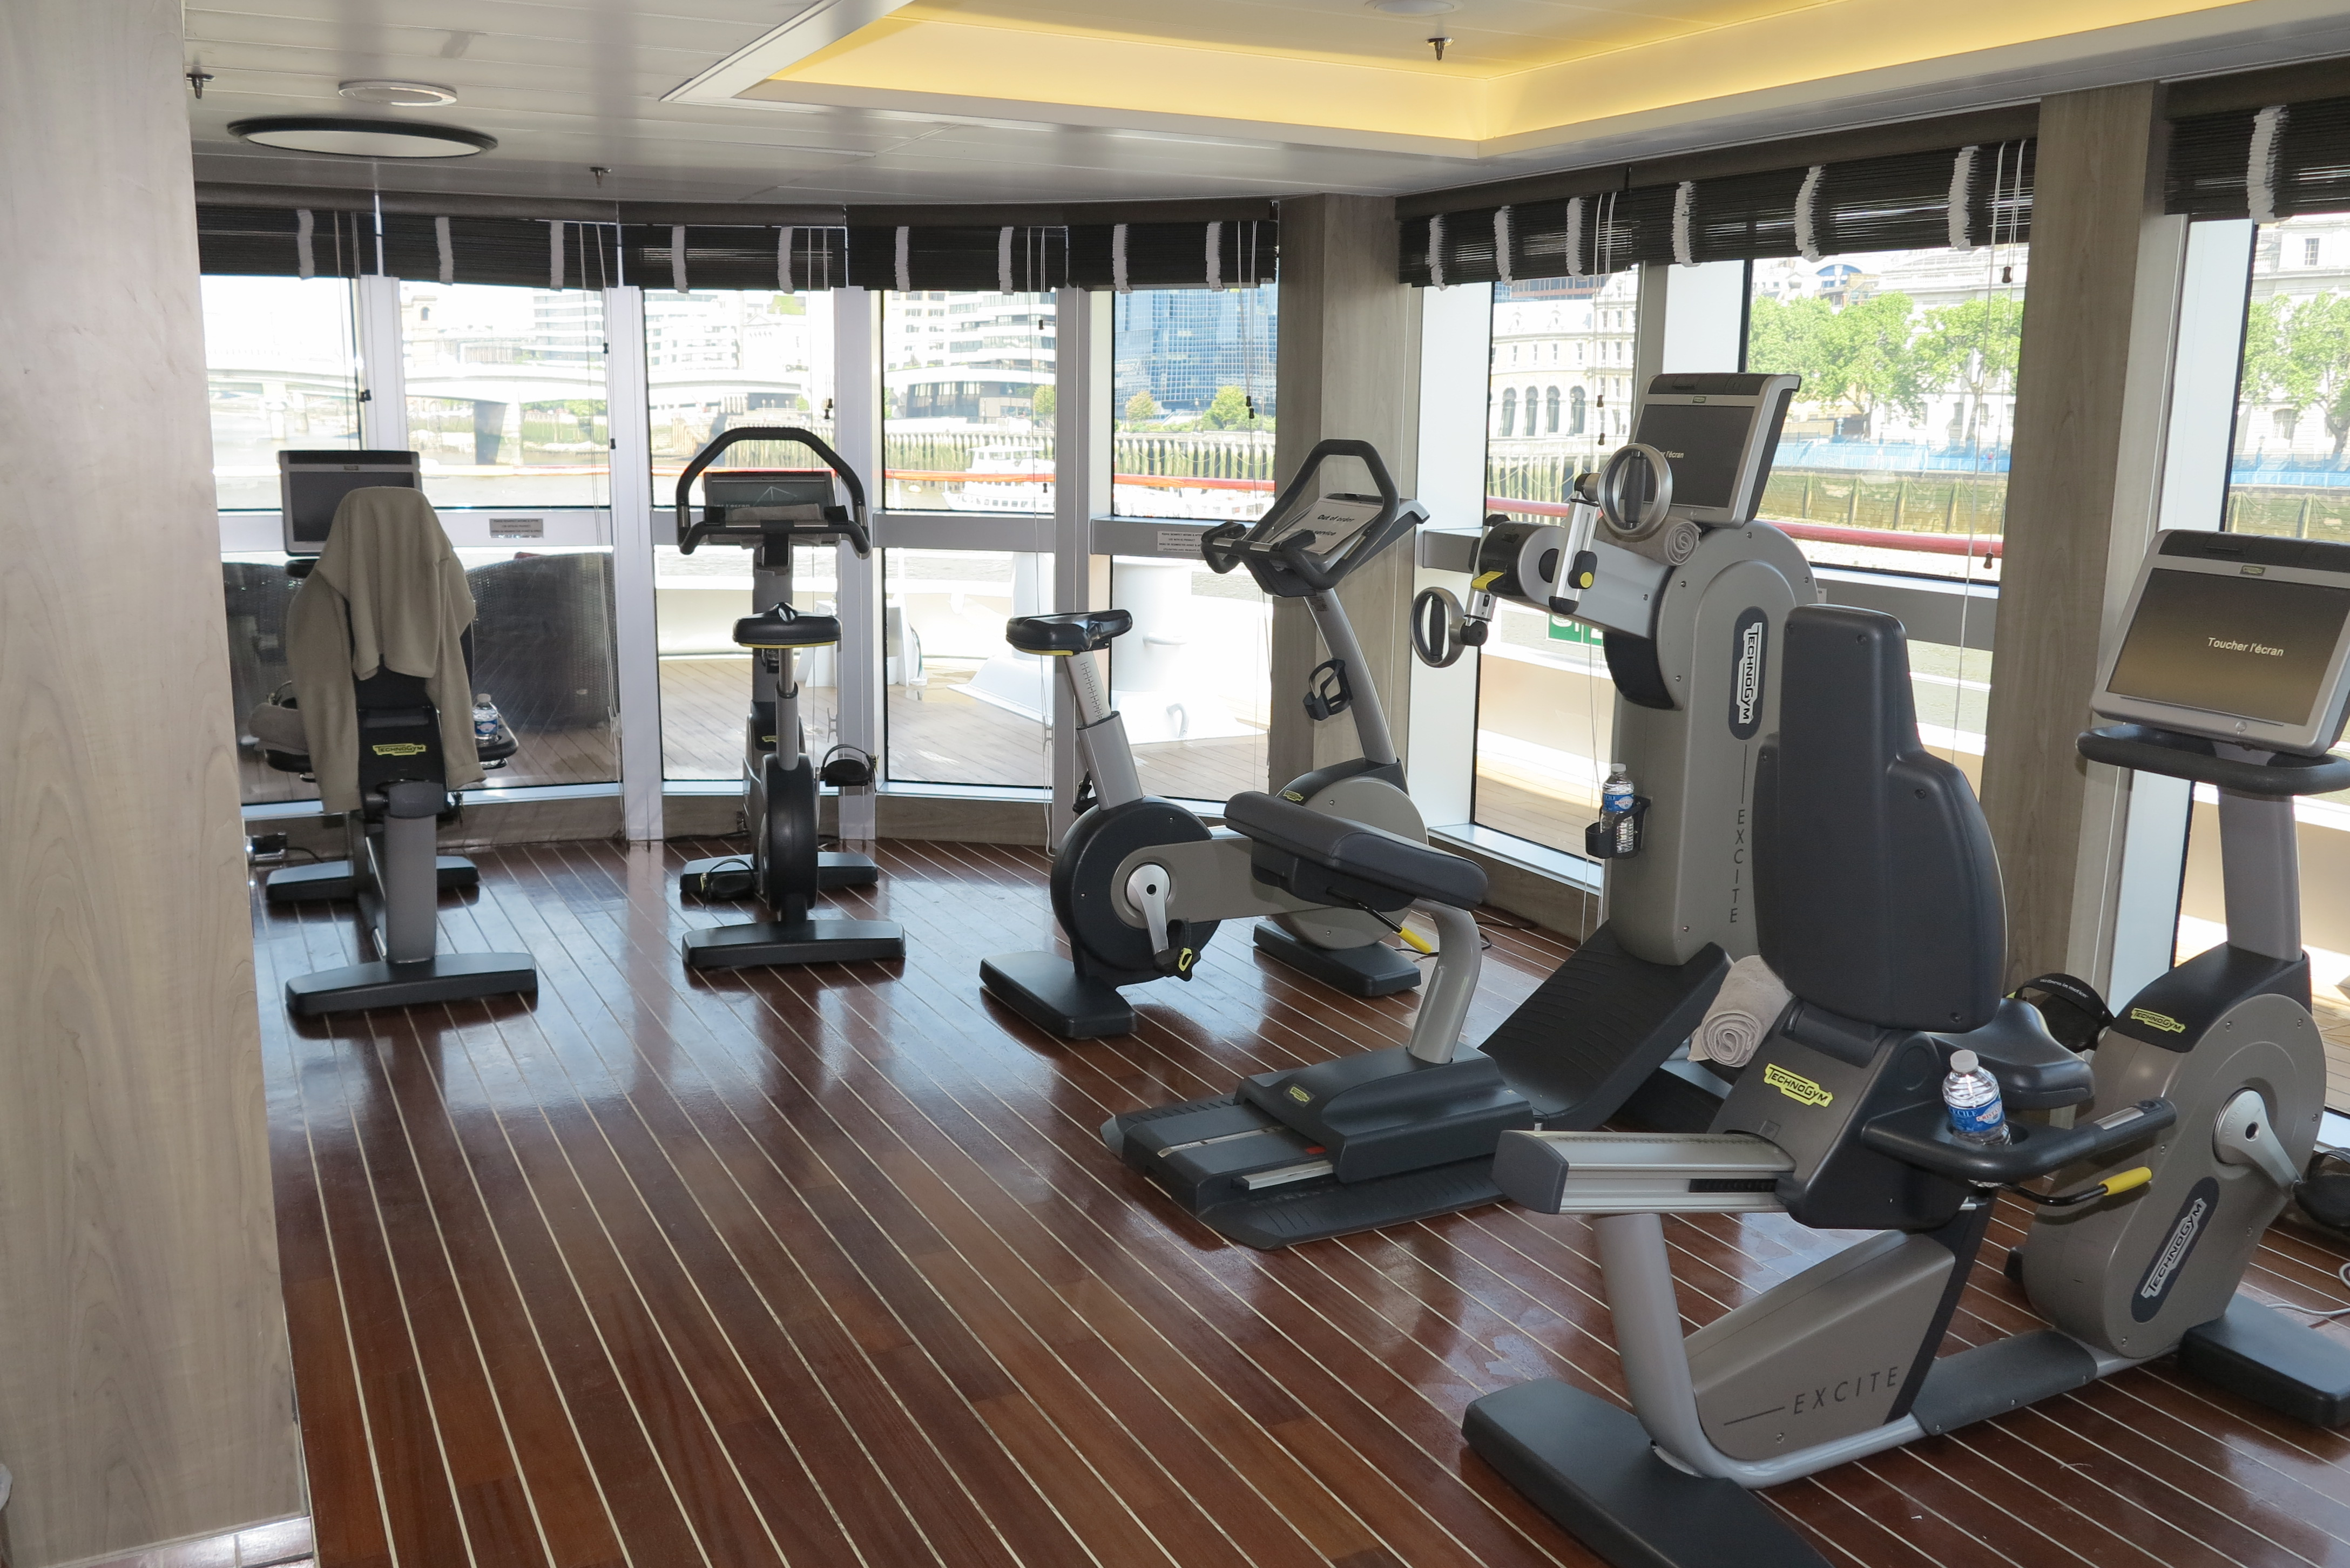 Gym calmer: The exercise room has tranquil views